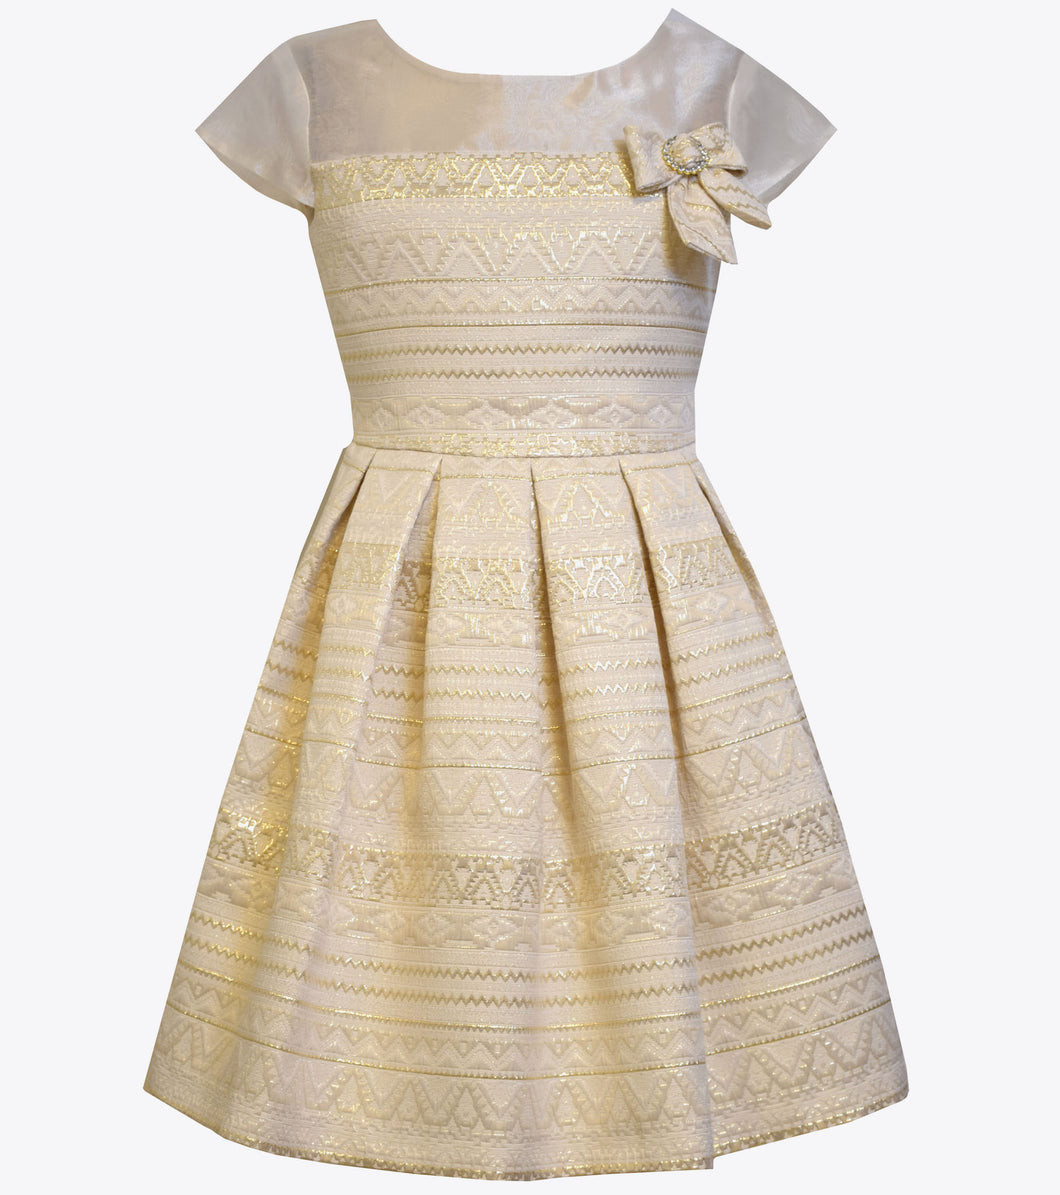 Bonnie Jean gold brocade dress